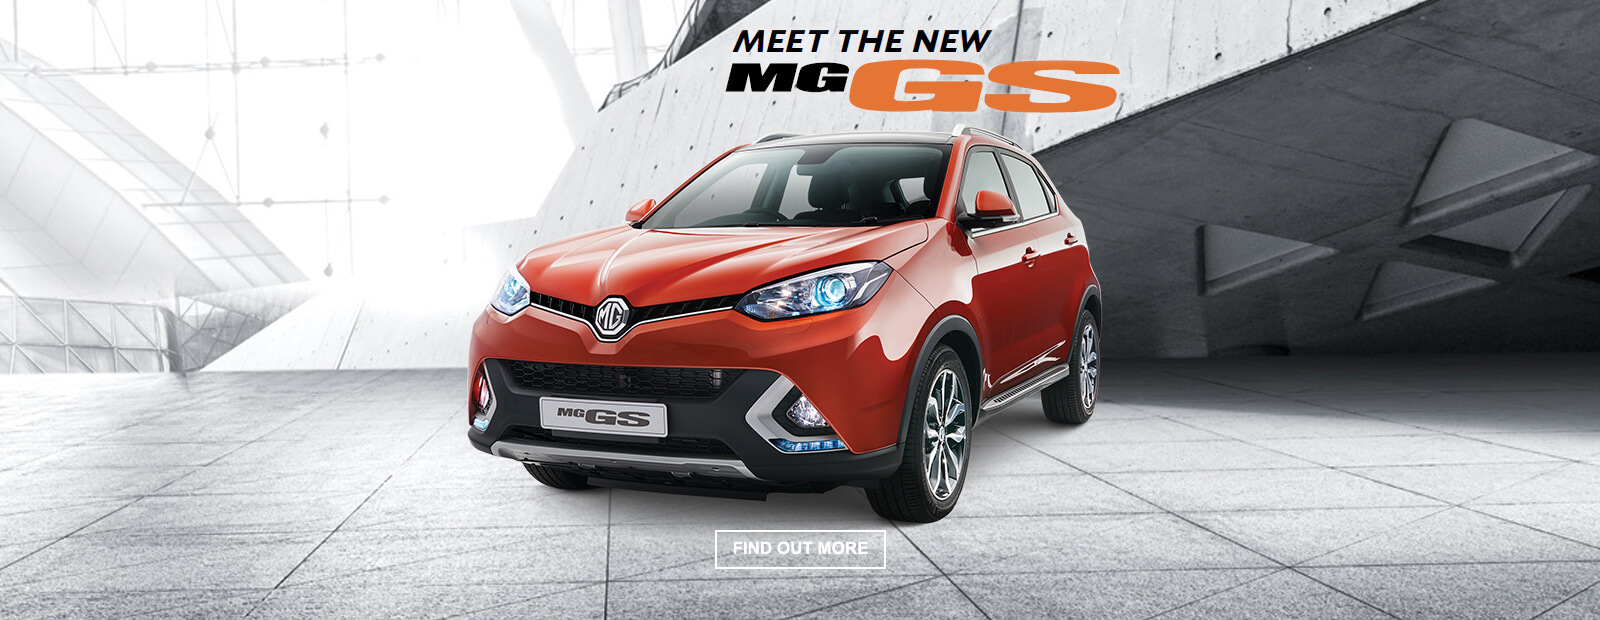 Discover the new MG GS SUV, the latest model available from Brisbane MG.